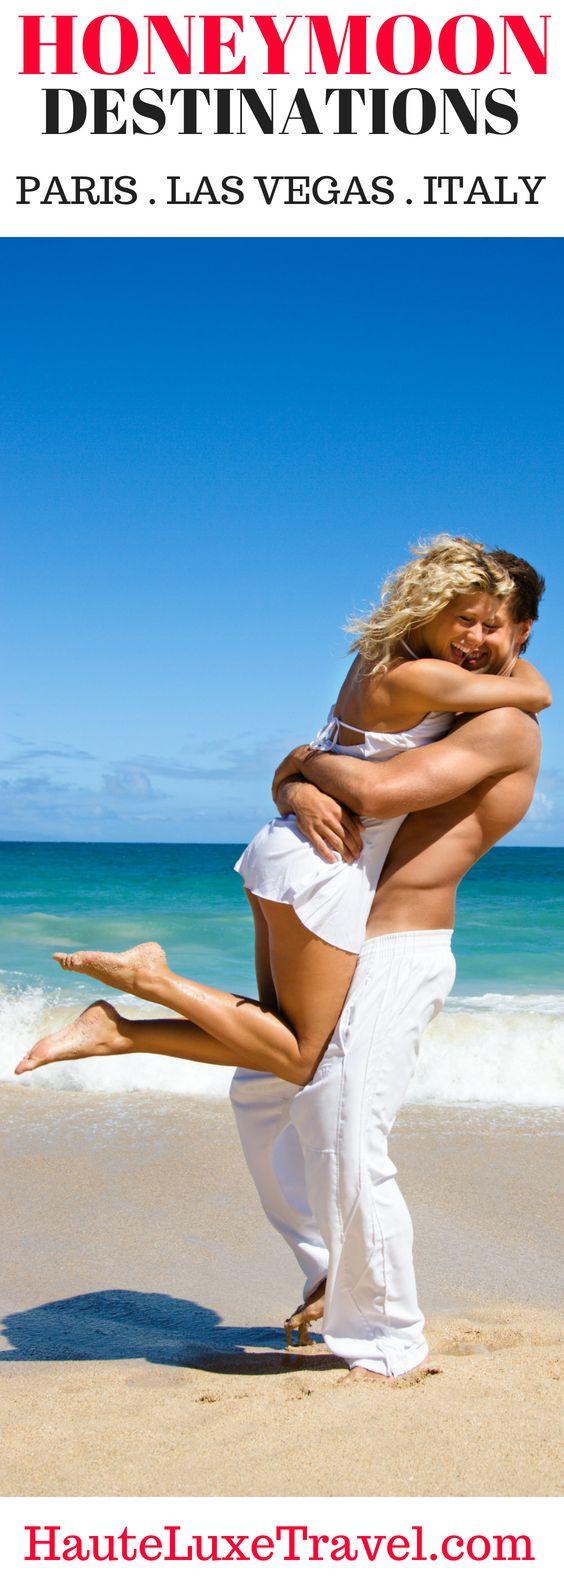 Romantic International Honeymoon: All Inclusive, Top Romantic Destinations For The Inspired